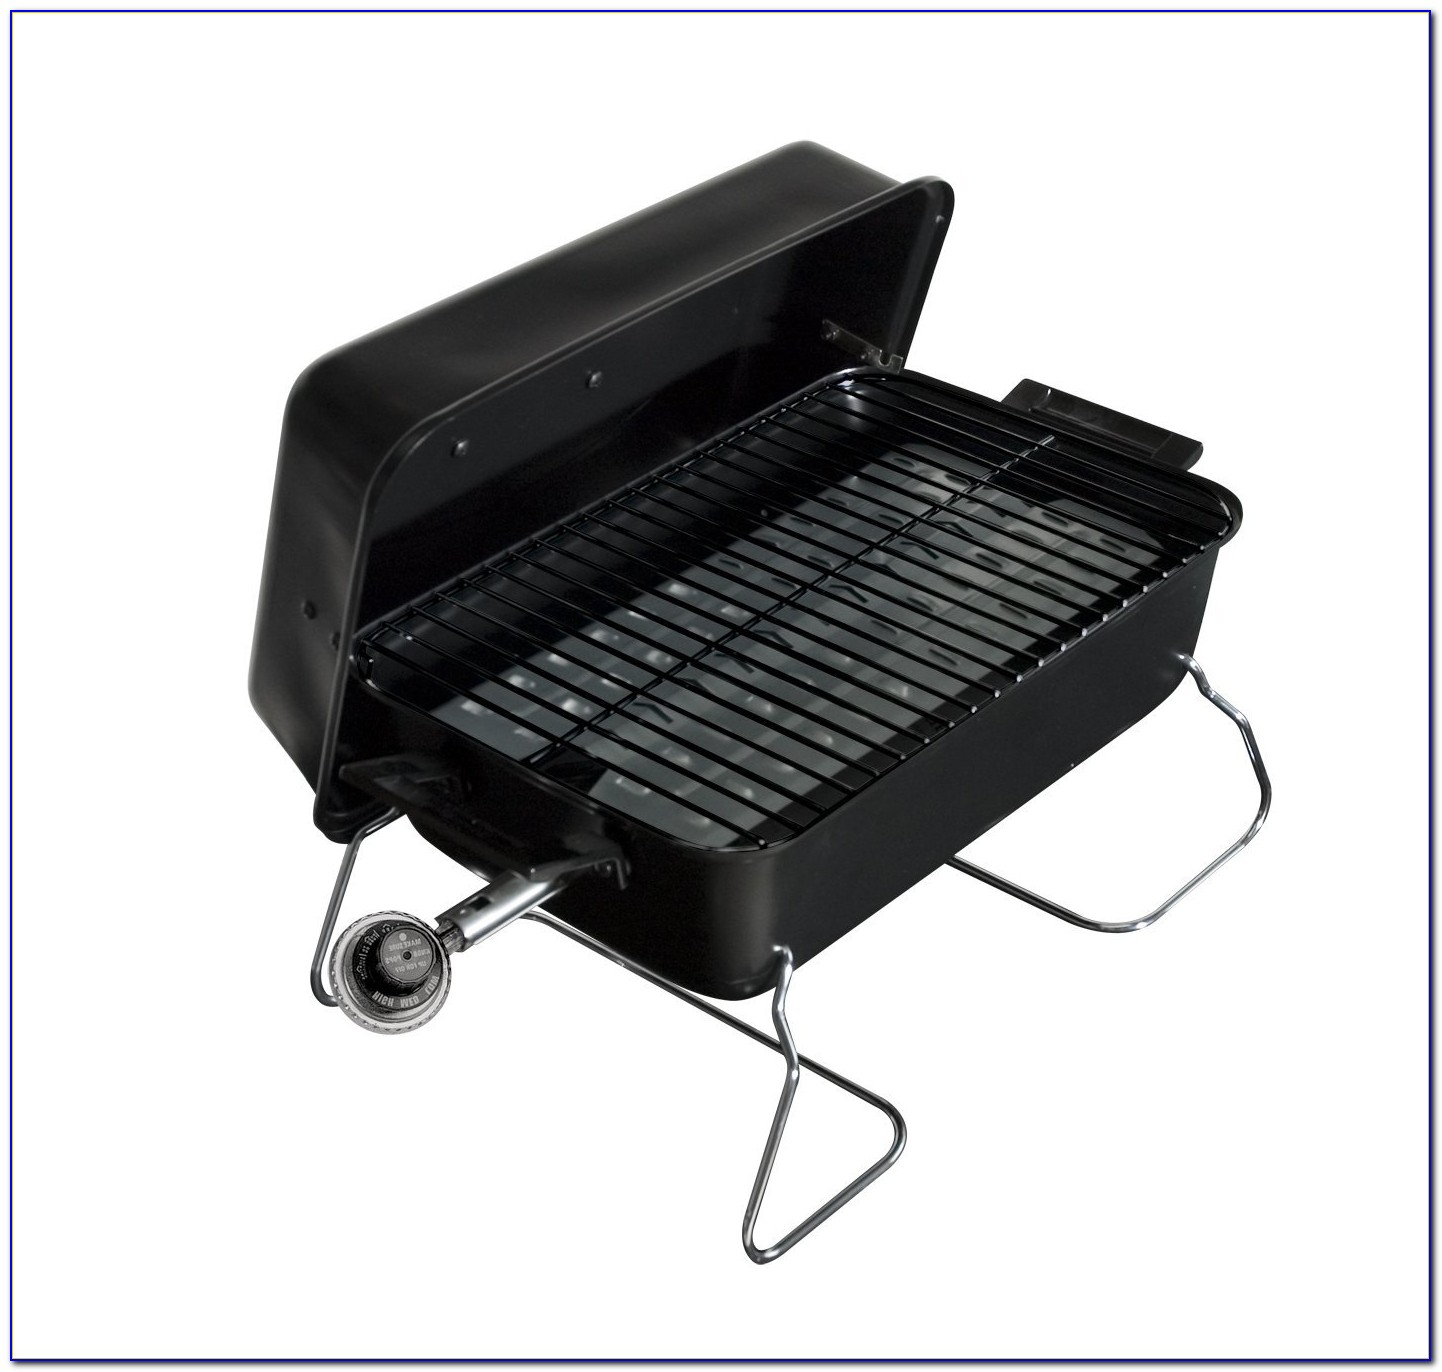 Weber Tabletop Grill Charcoal